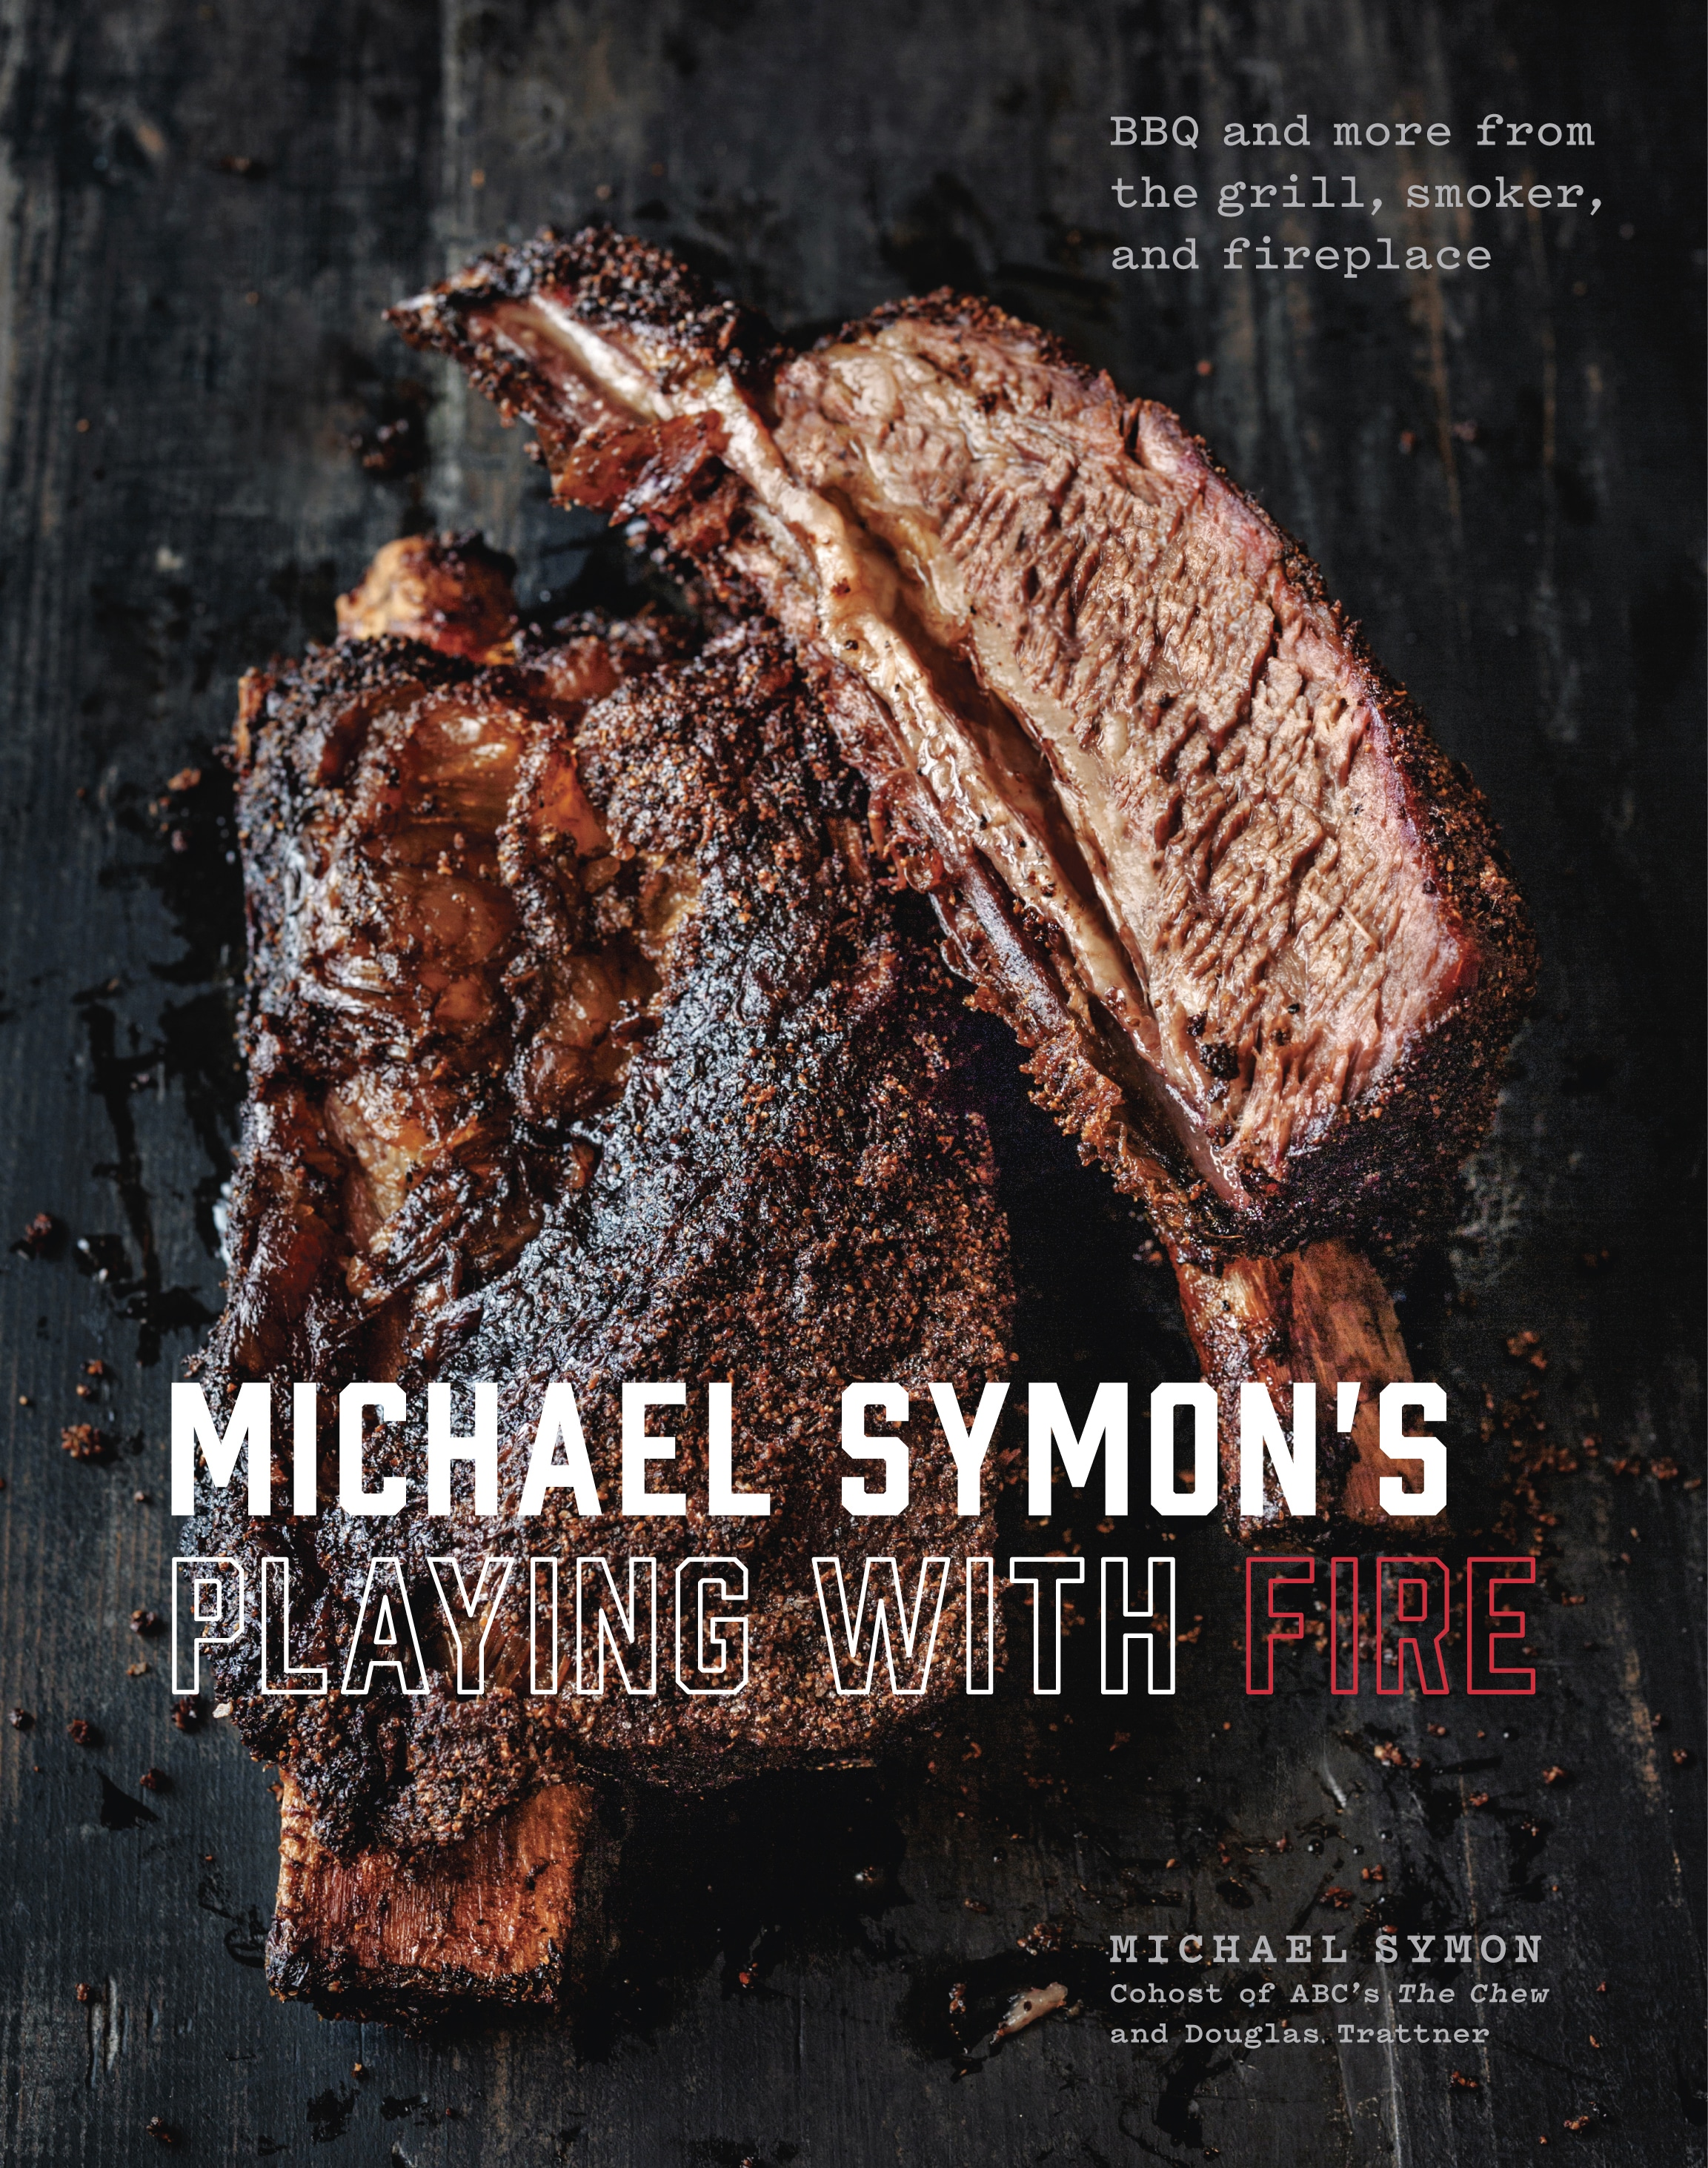 Time to start… PLAYING WITH FIRE by The Chew co-host and celebrated Iron Chef Michael Symon